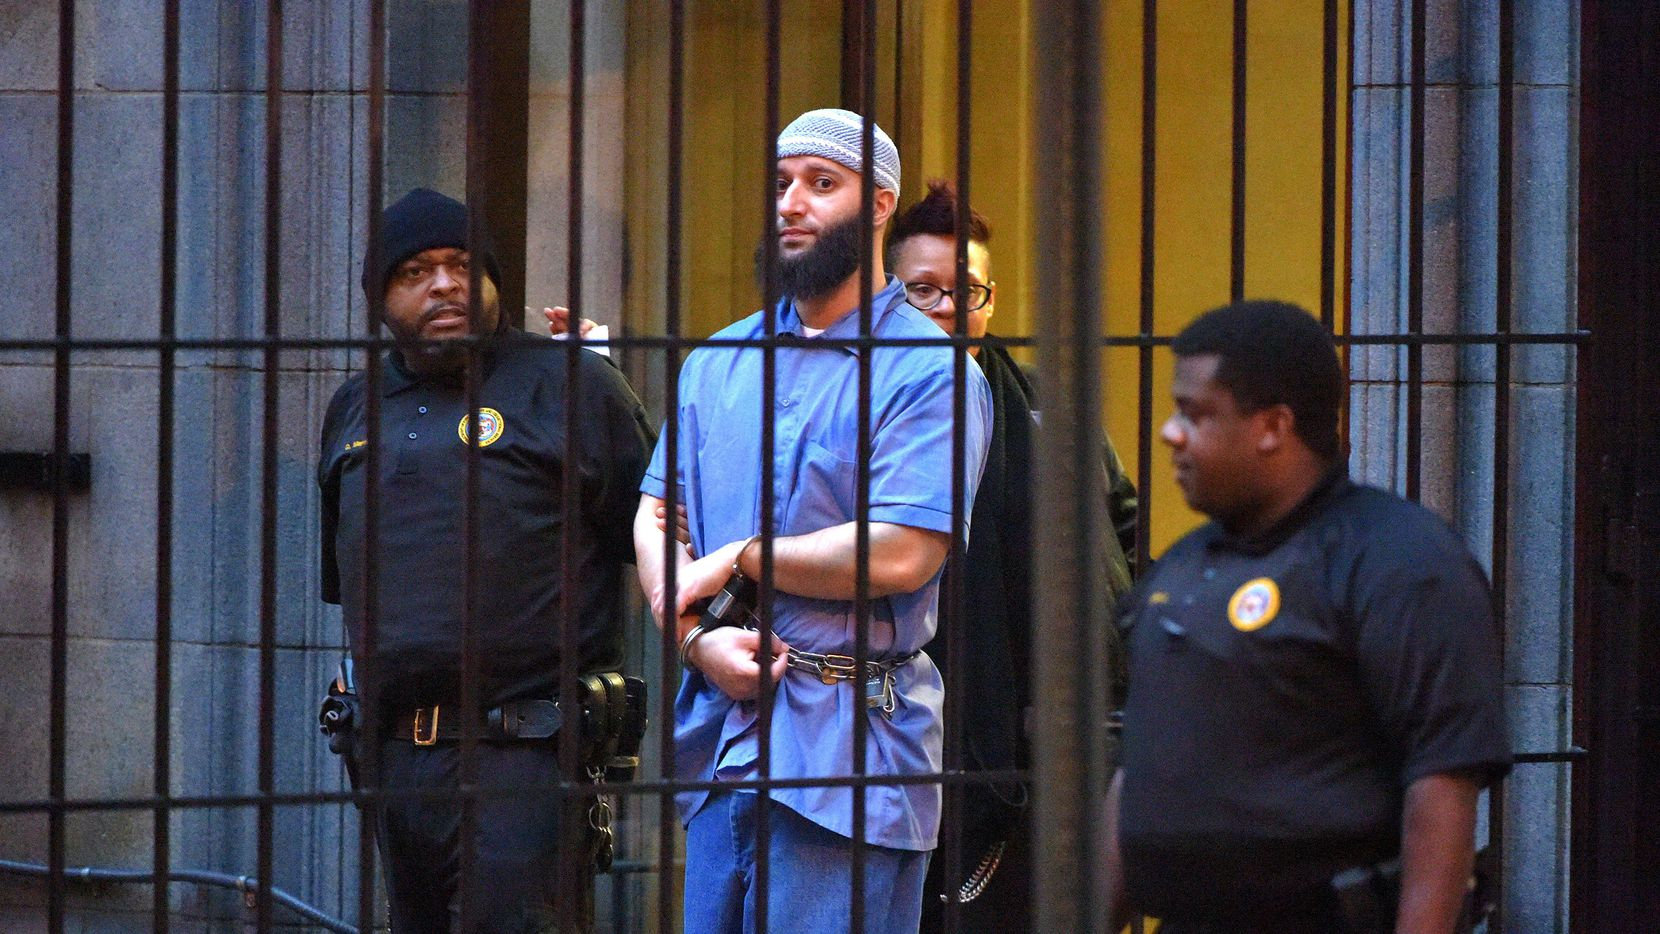 """Officials escort """"Serial"""" podcast subject Adnan Syed from the courthouse on Feb. 3, 2016, following the completion of the first day of hearings for a retrial in Baltimore. Maryland's second-highest court has upheld a judge's ruling overturning the murder conviction of Syed. (Karl Merton Ferron/Baltimore Sun/TNS)"""